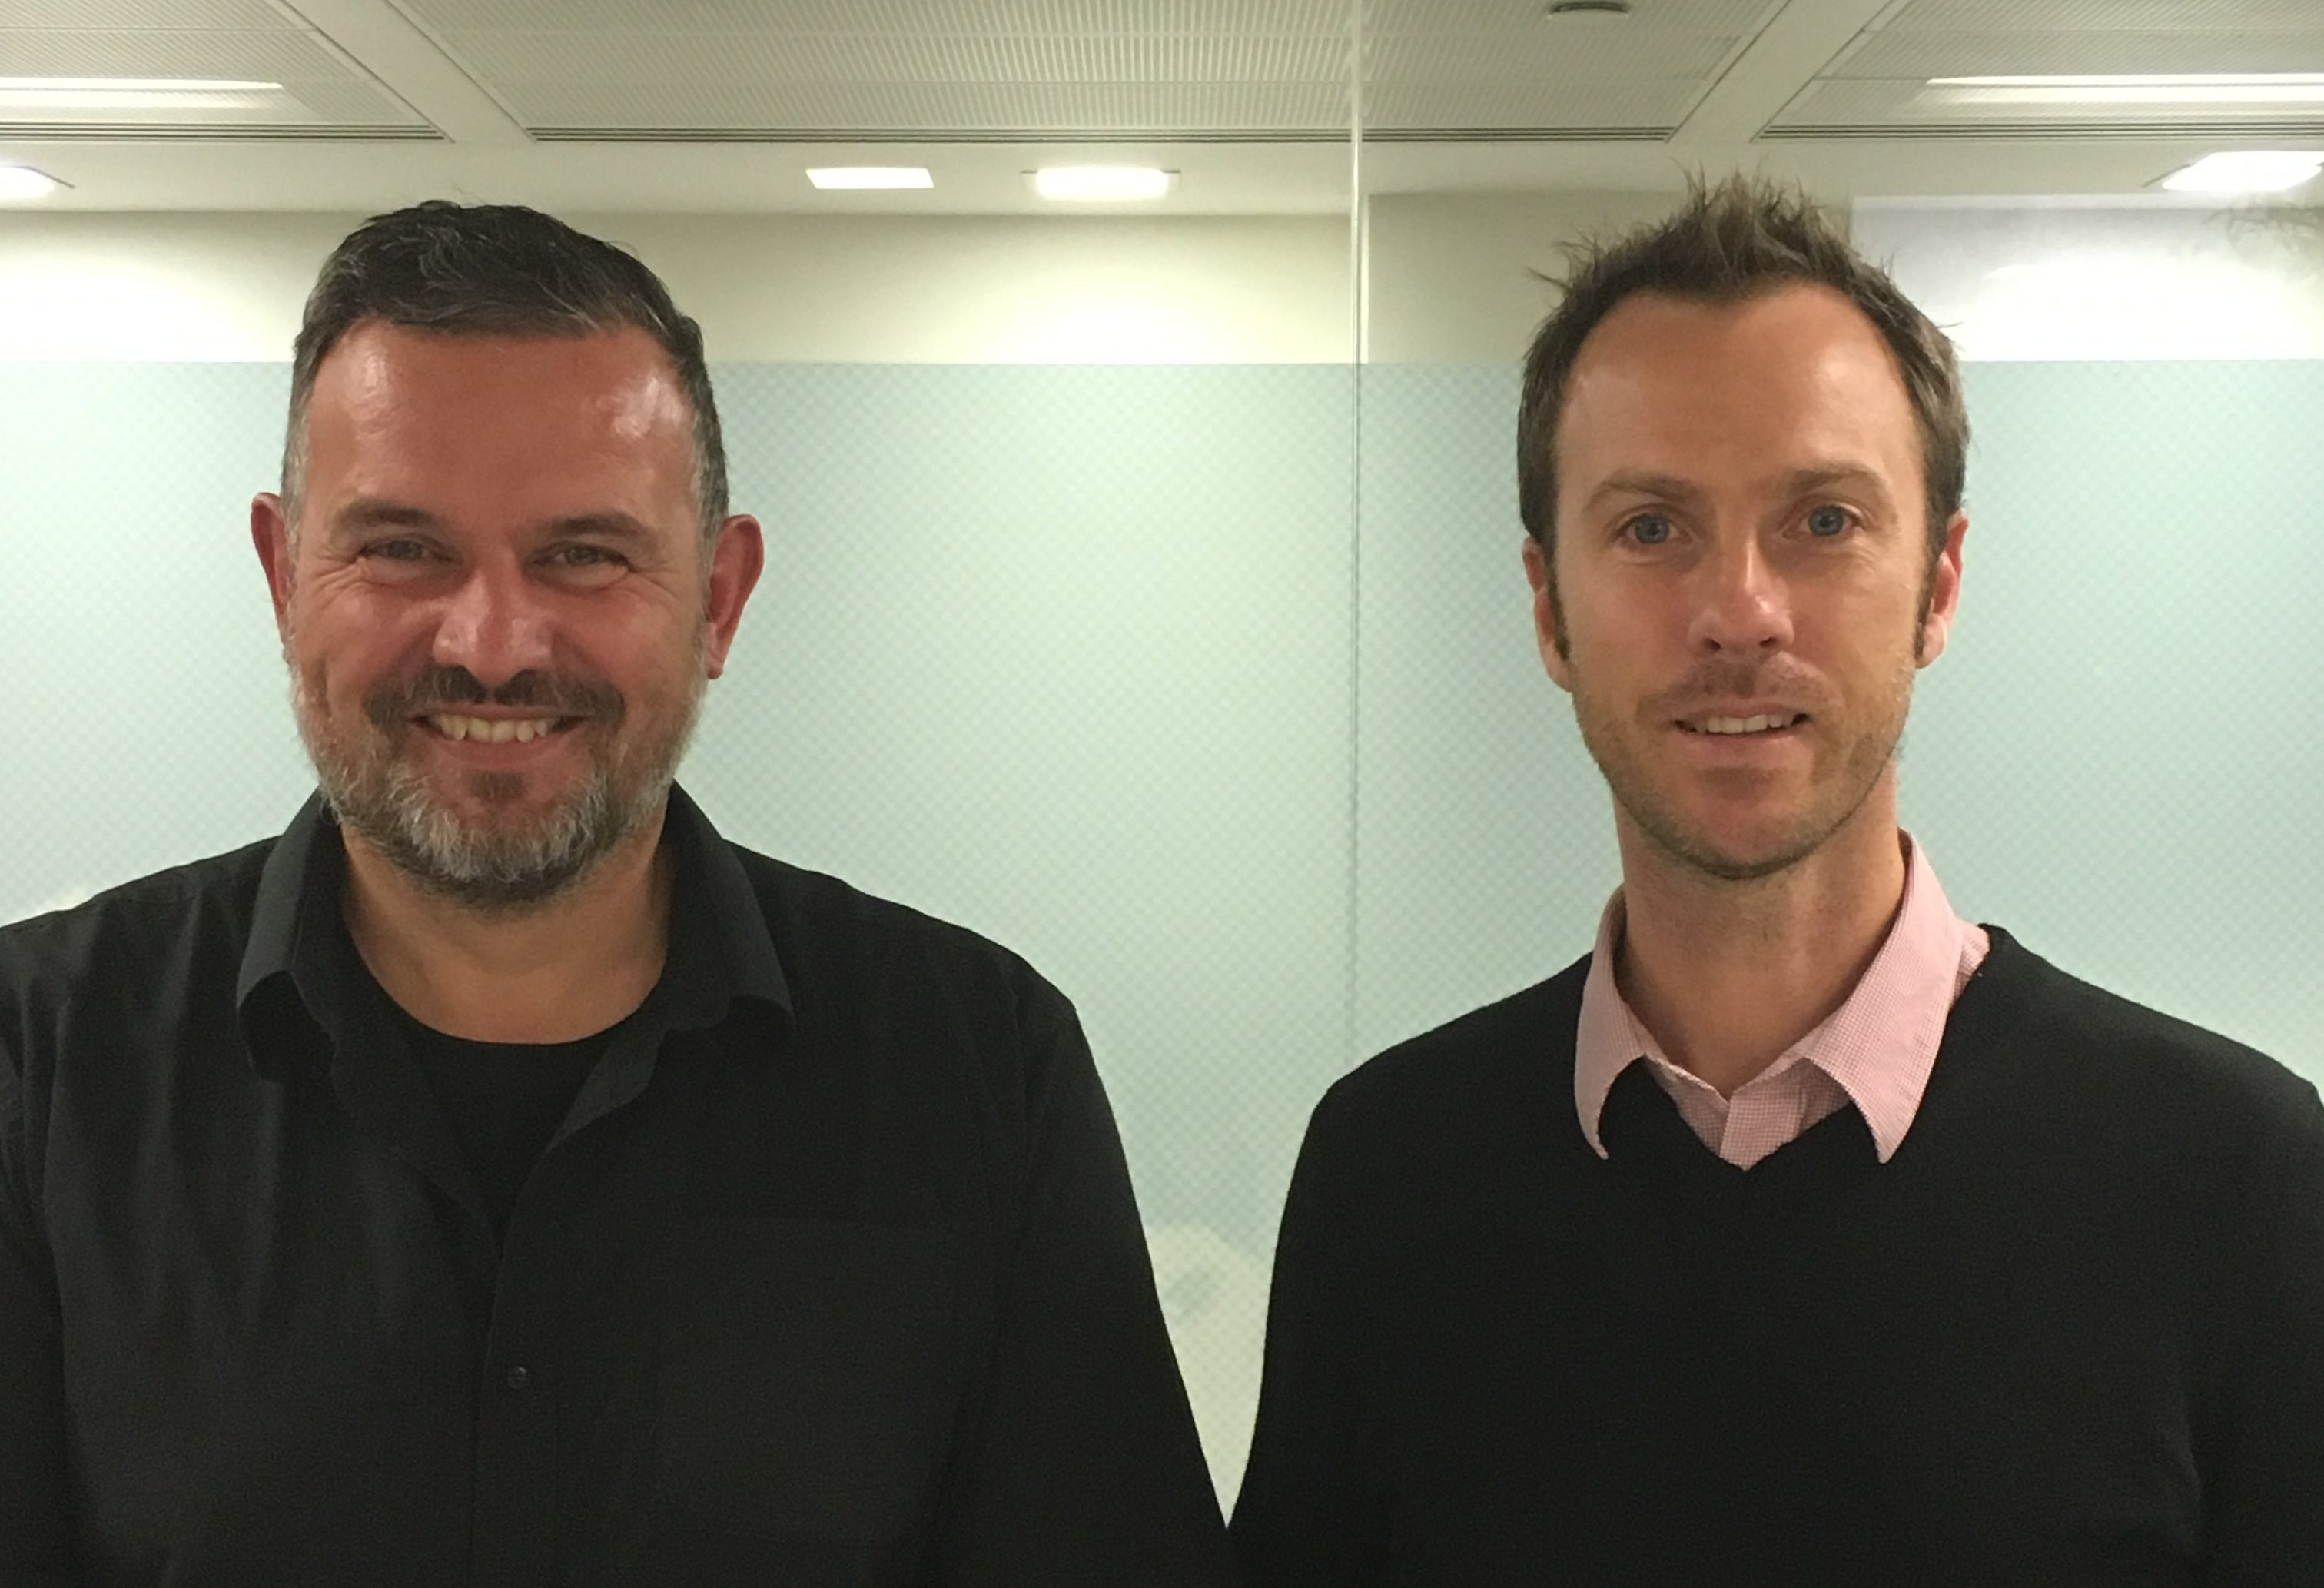 Toby Leighton Pope and Steve Homer named co CEOs of AEG Live UK